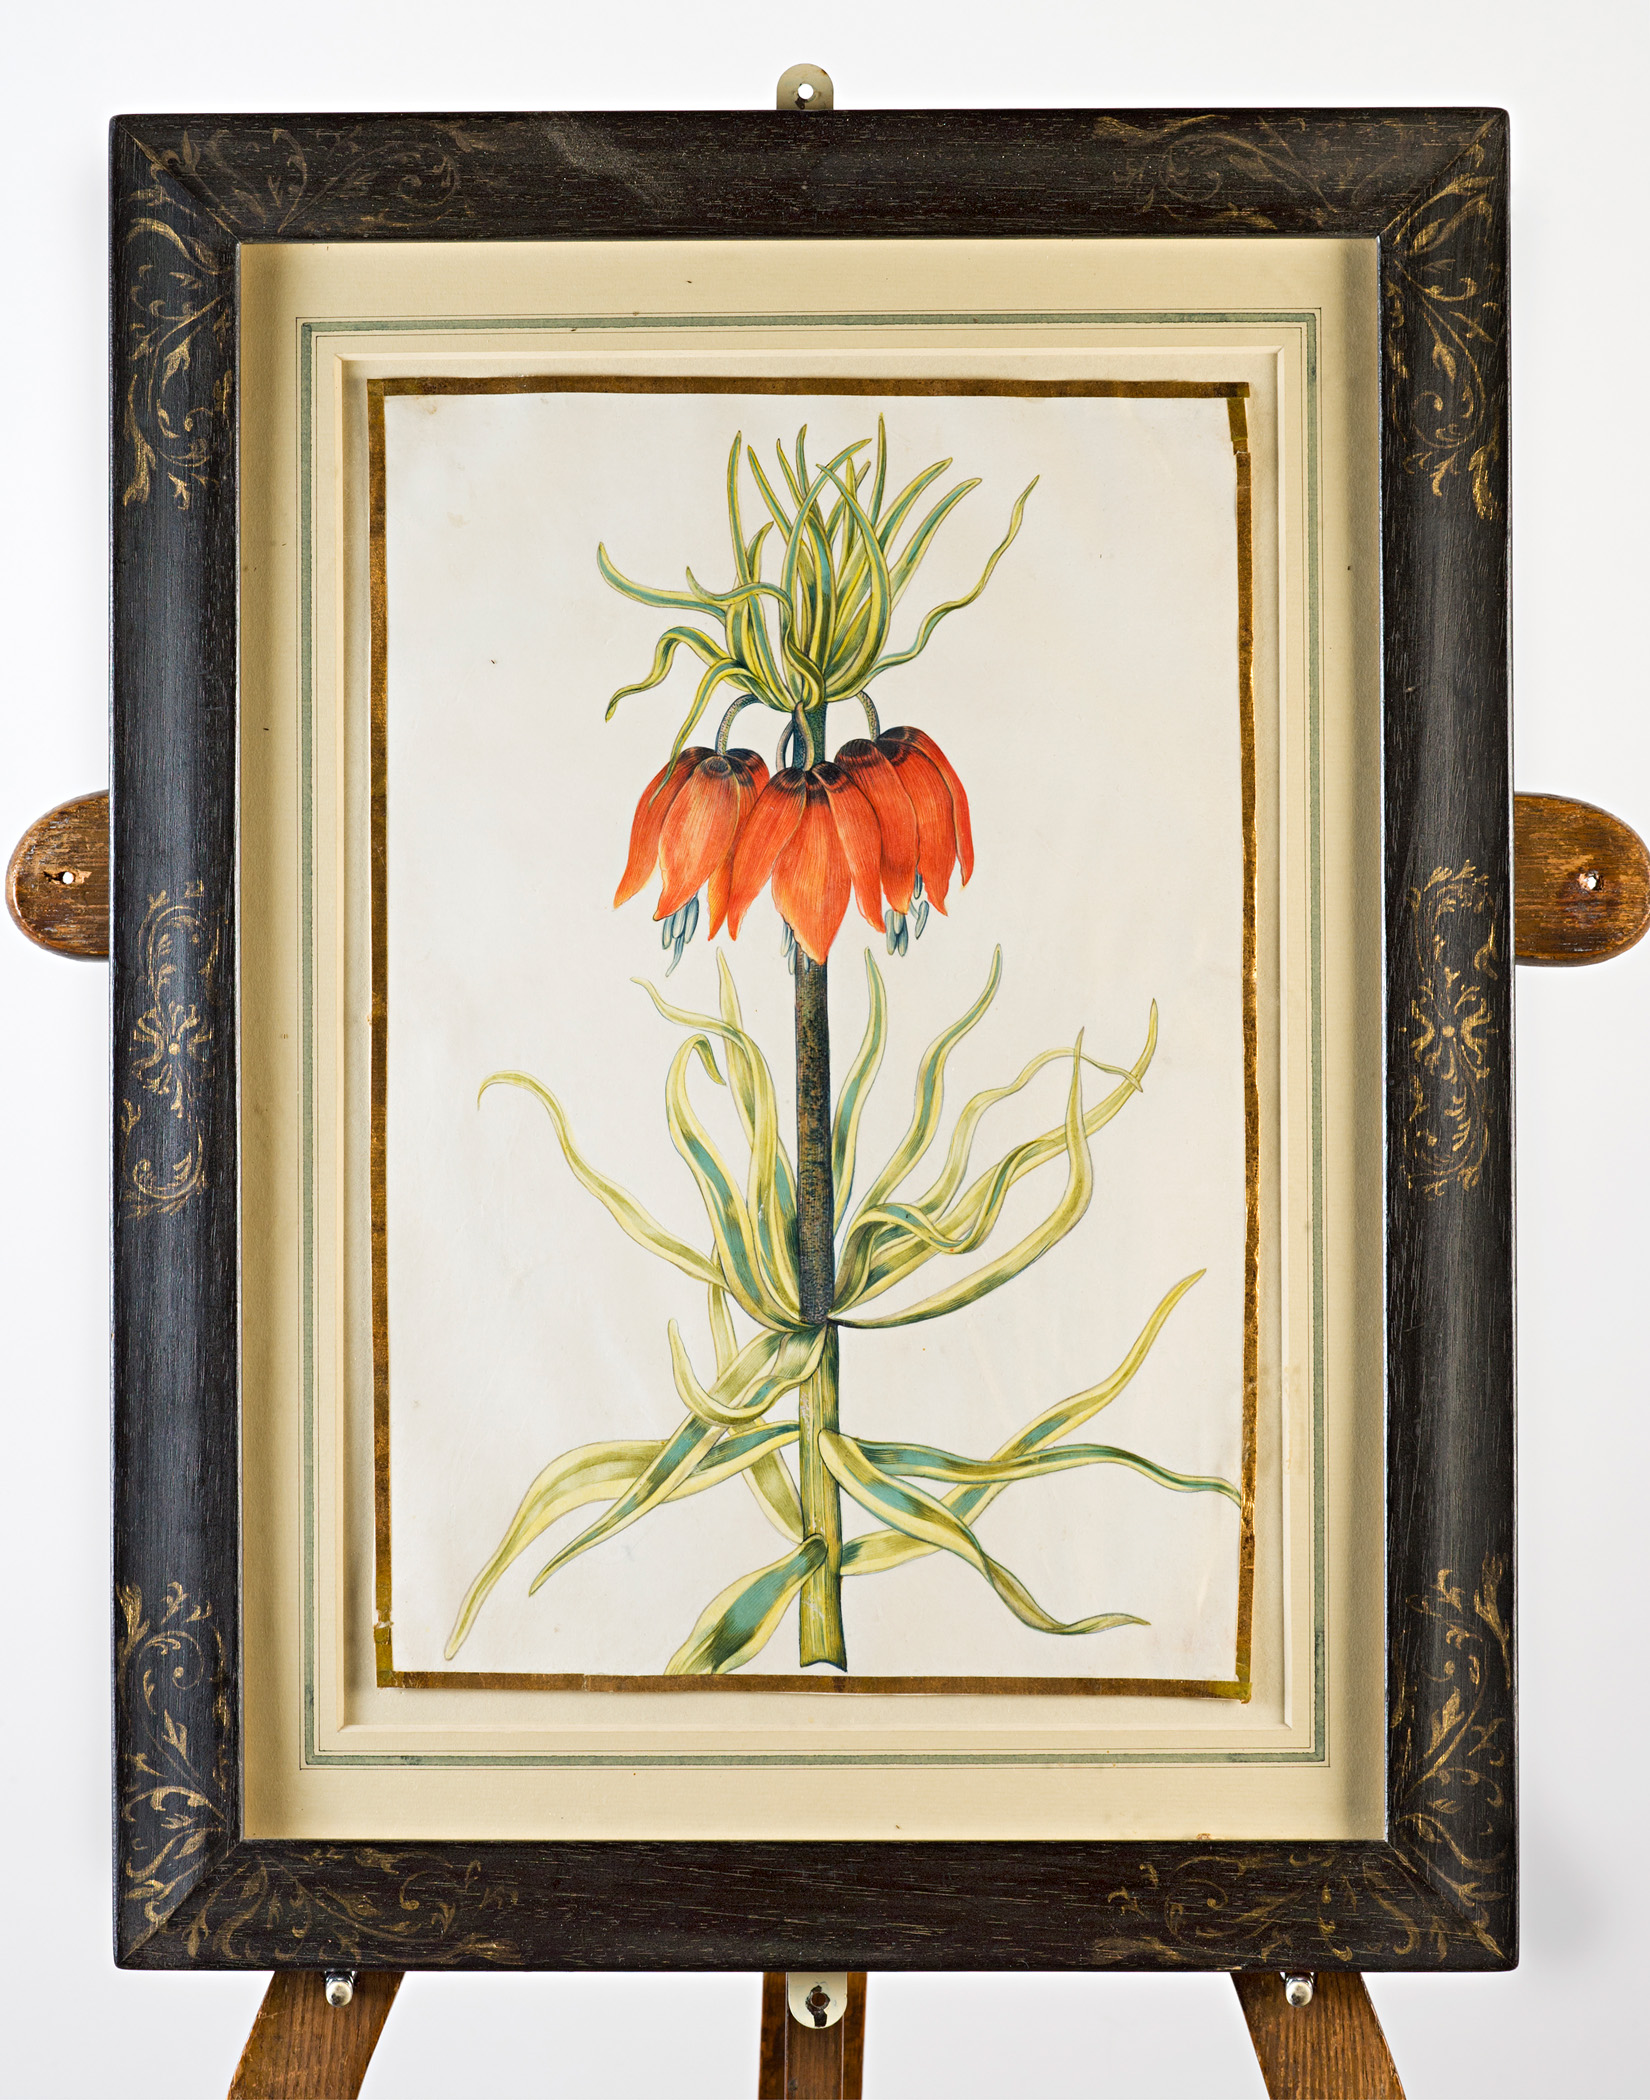 Crown Imperial, Attributed to Claude Aubriet (c.1665-1742).